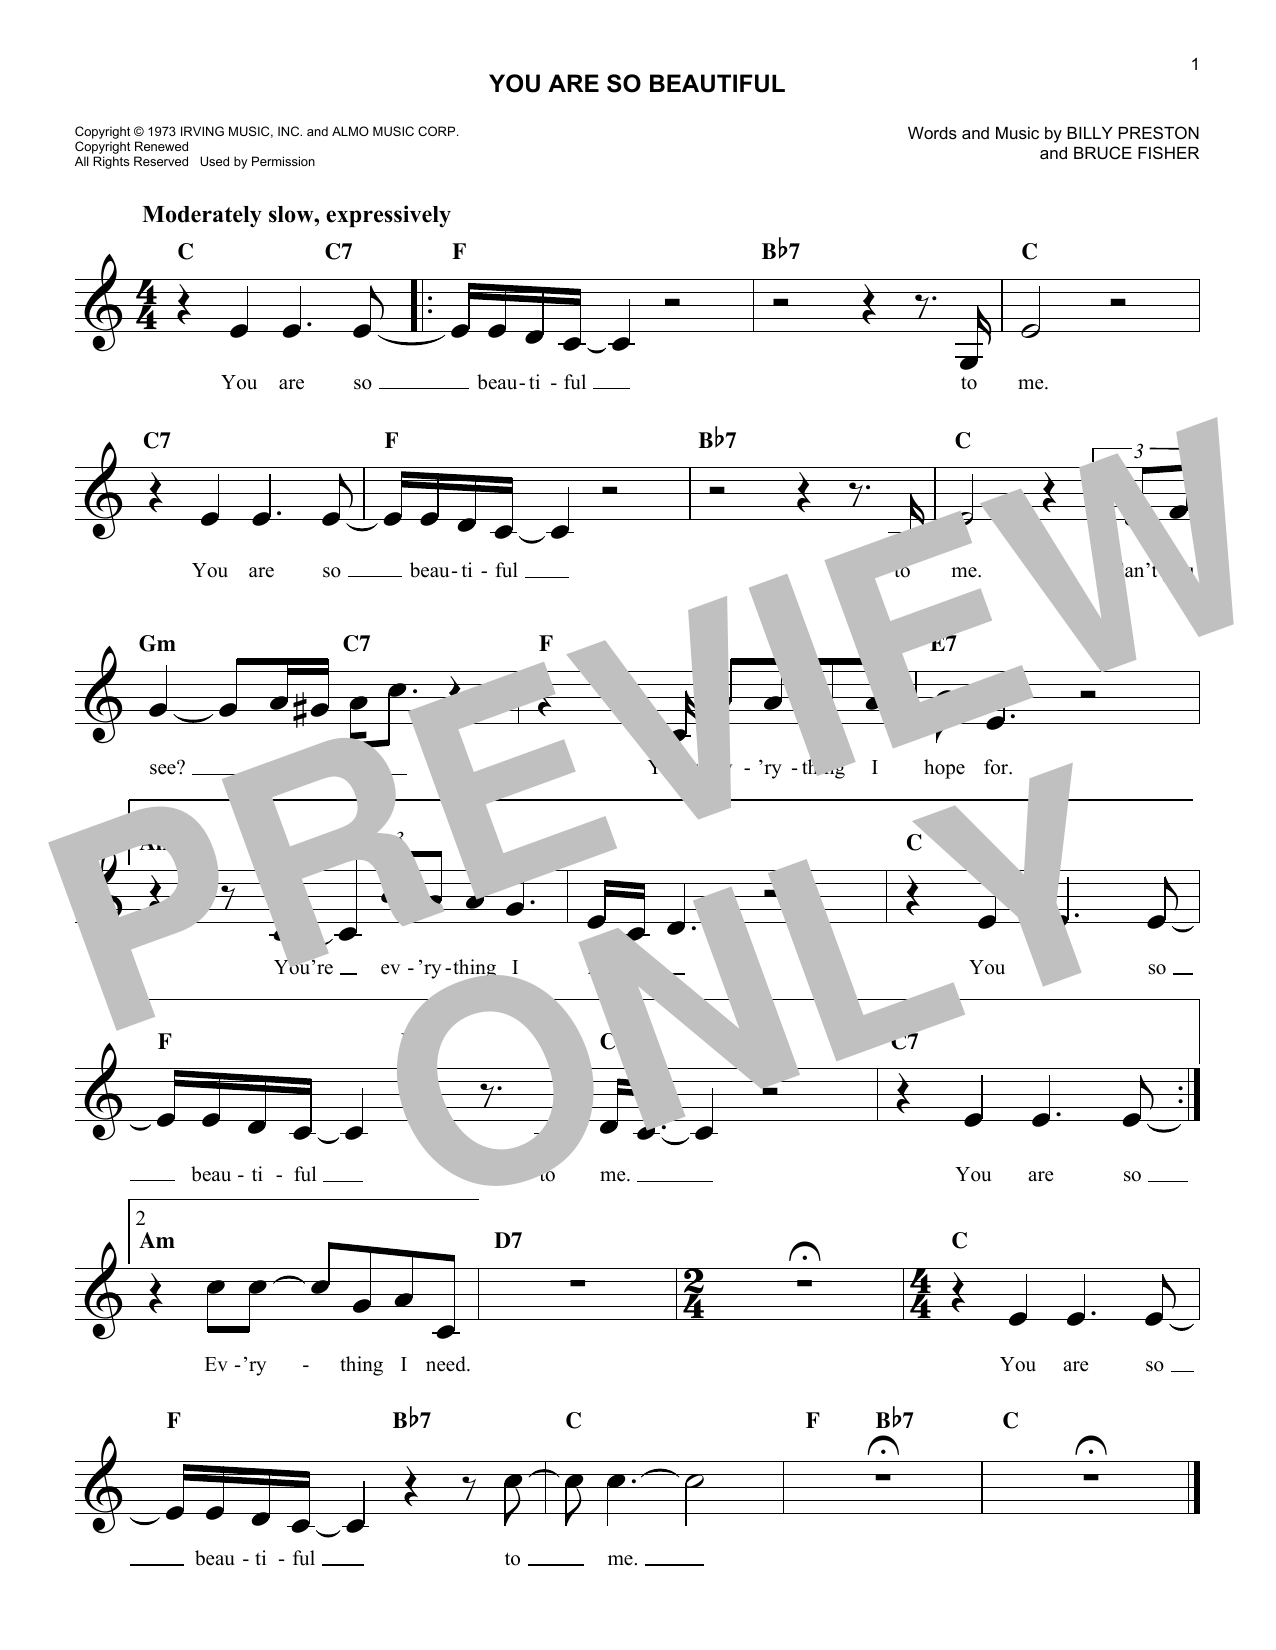 Joe Cocker You Are So Beautiful Sheet Music Notes Chords